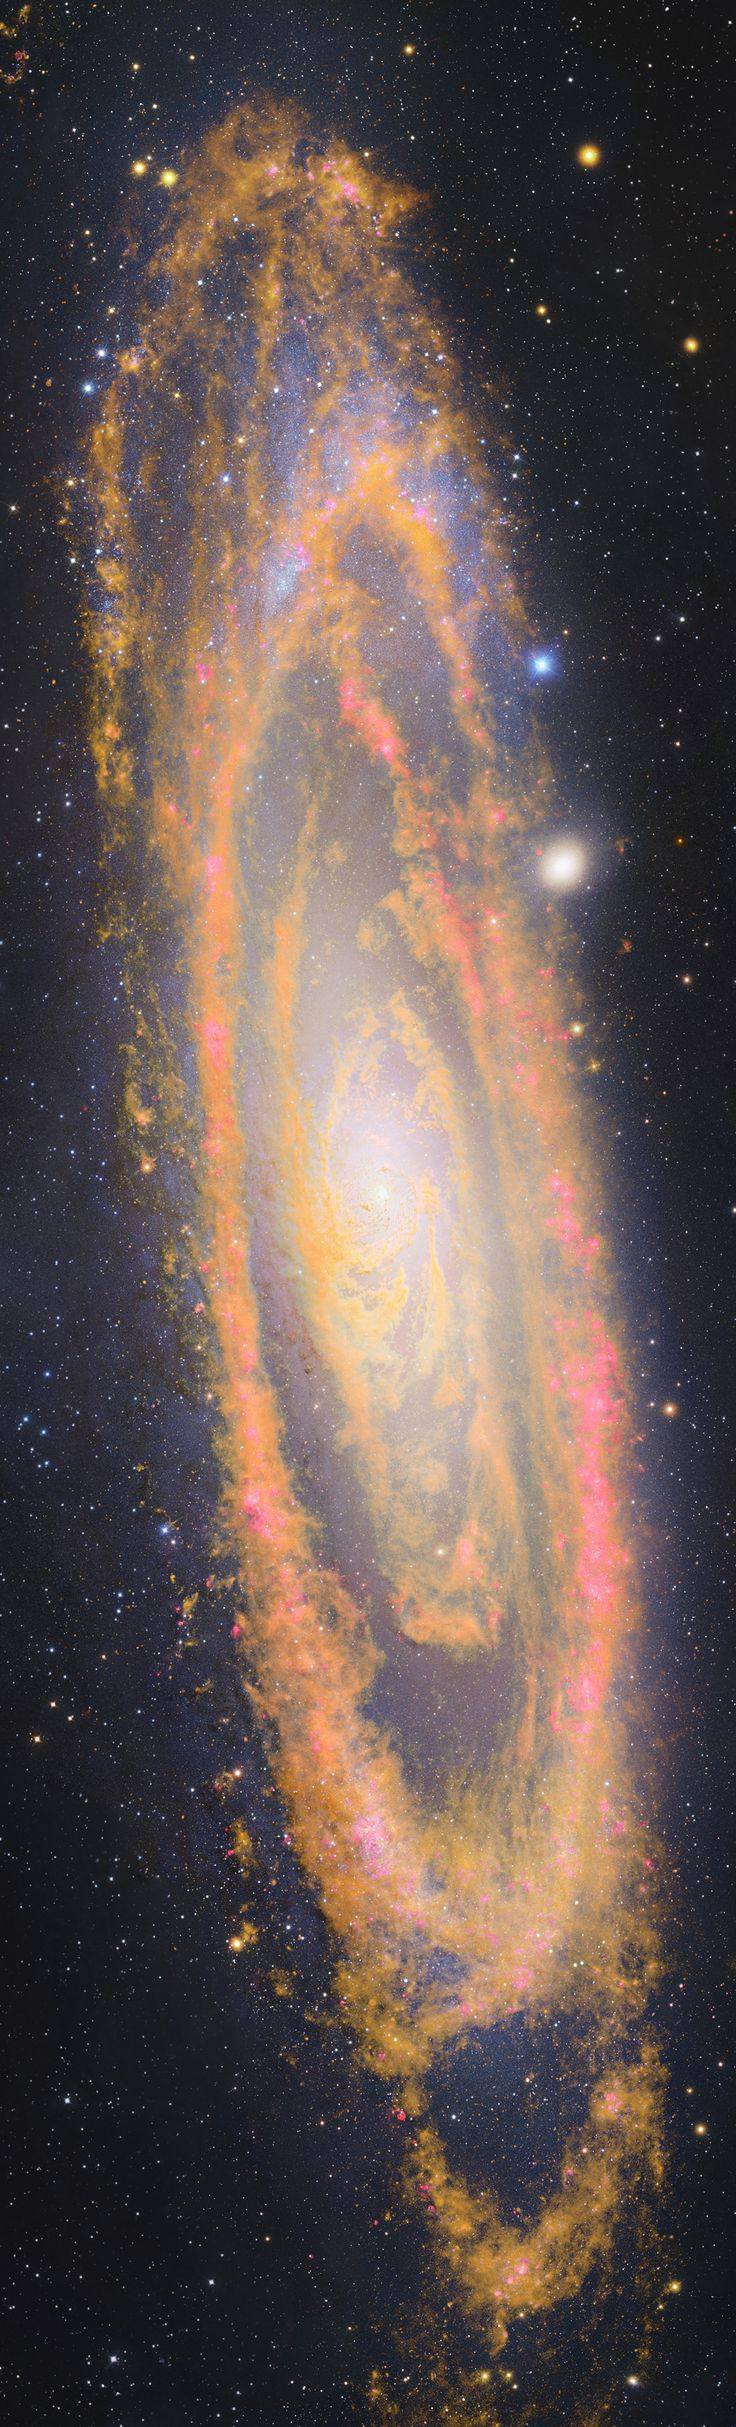 The Andromeda Galaxy (M31) ~ A massive spiral 2.5 million light-years away, over twice the diameter of our own Milky Way, it's the largest nearby galaxy. Andromeda's population of bright young blue stars lie along its sweeping spiral arms. (Spitzer Space Telescope)